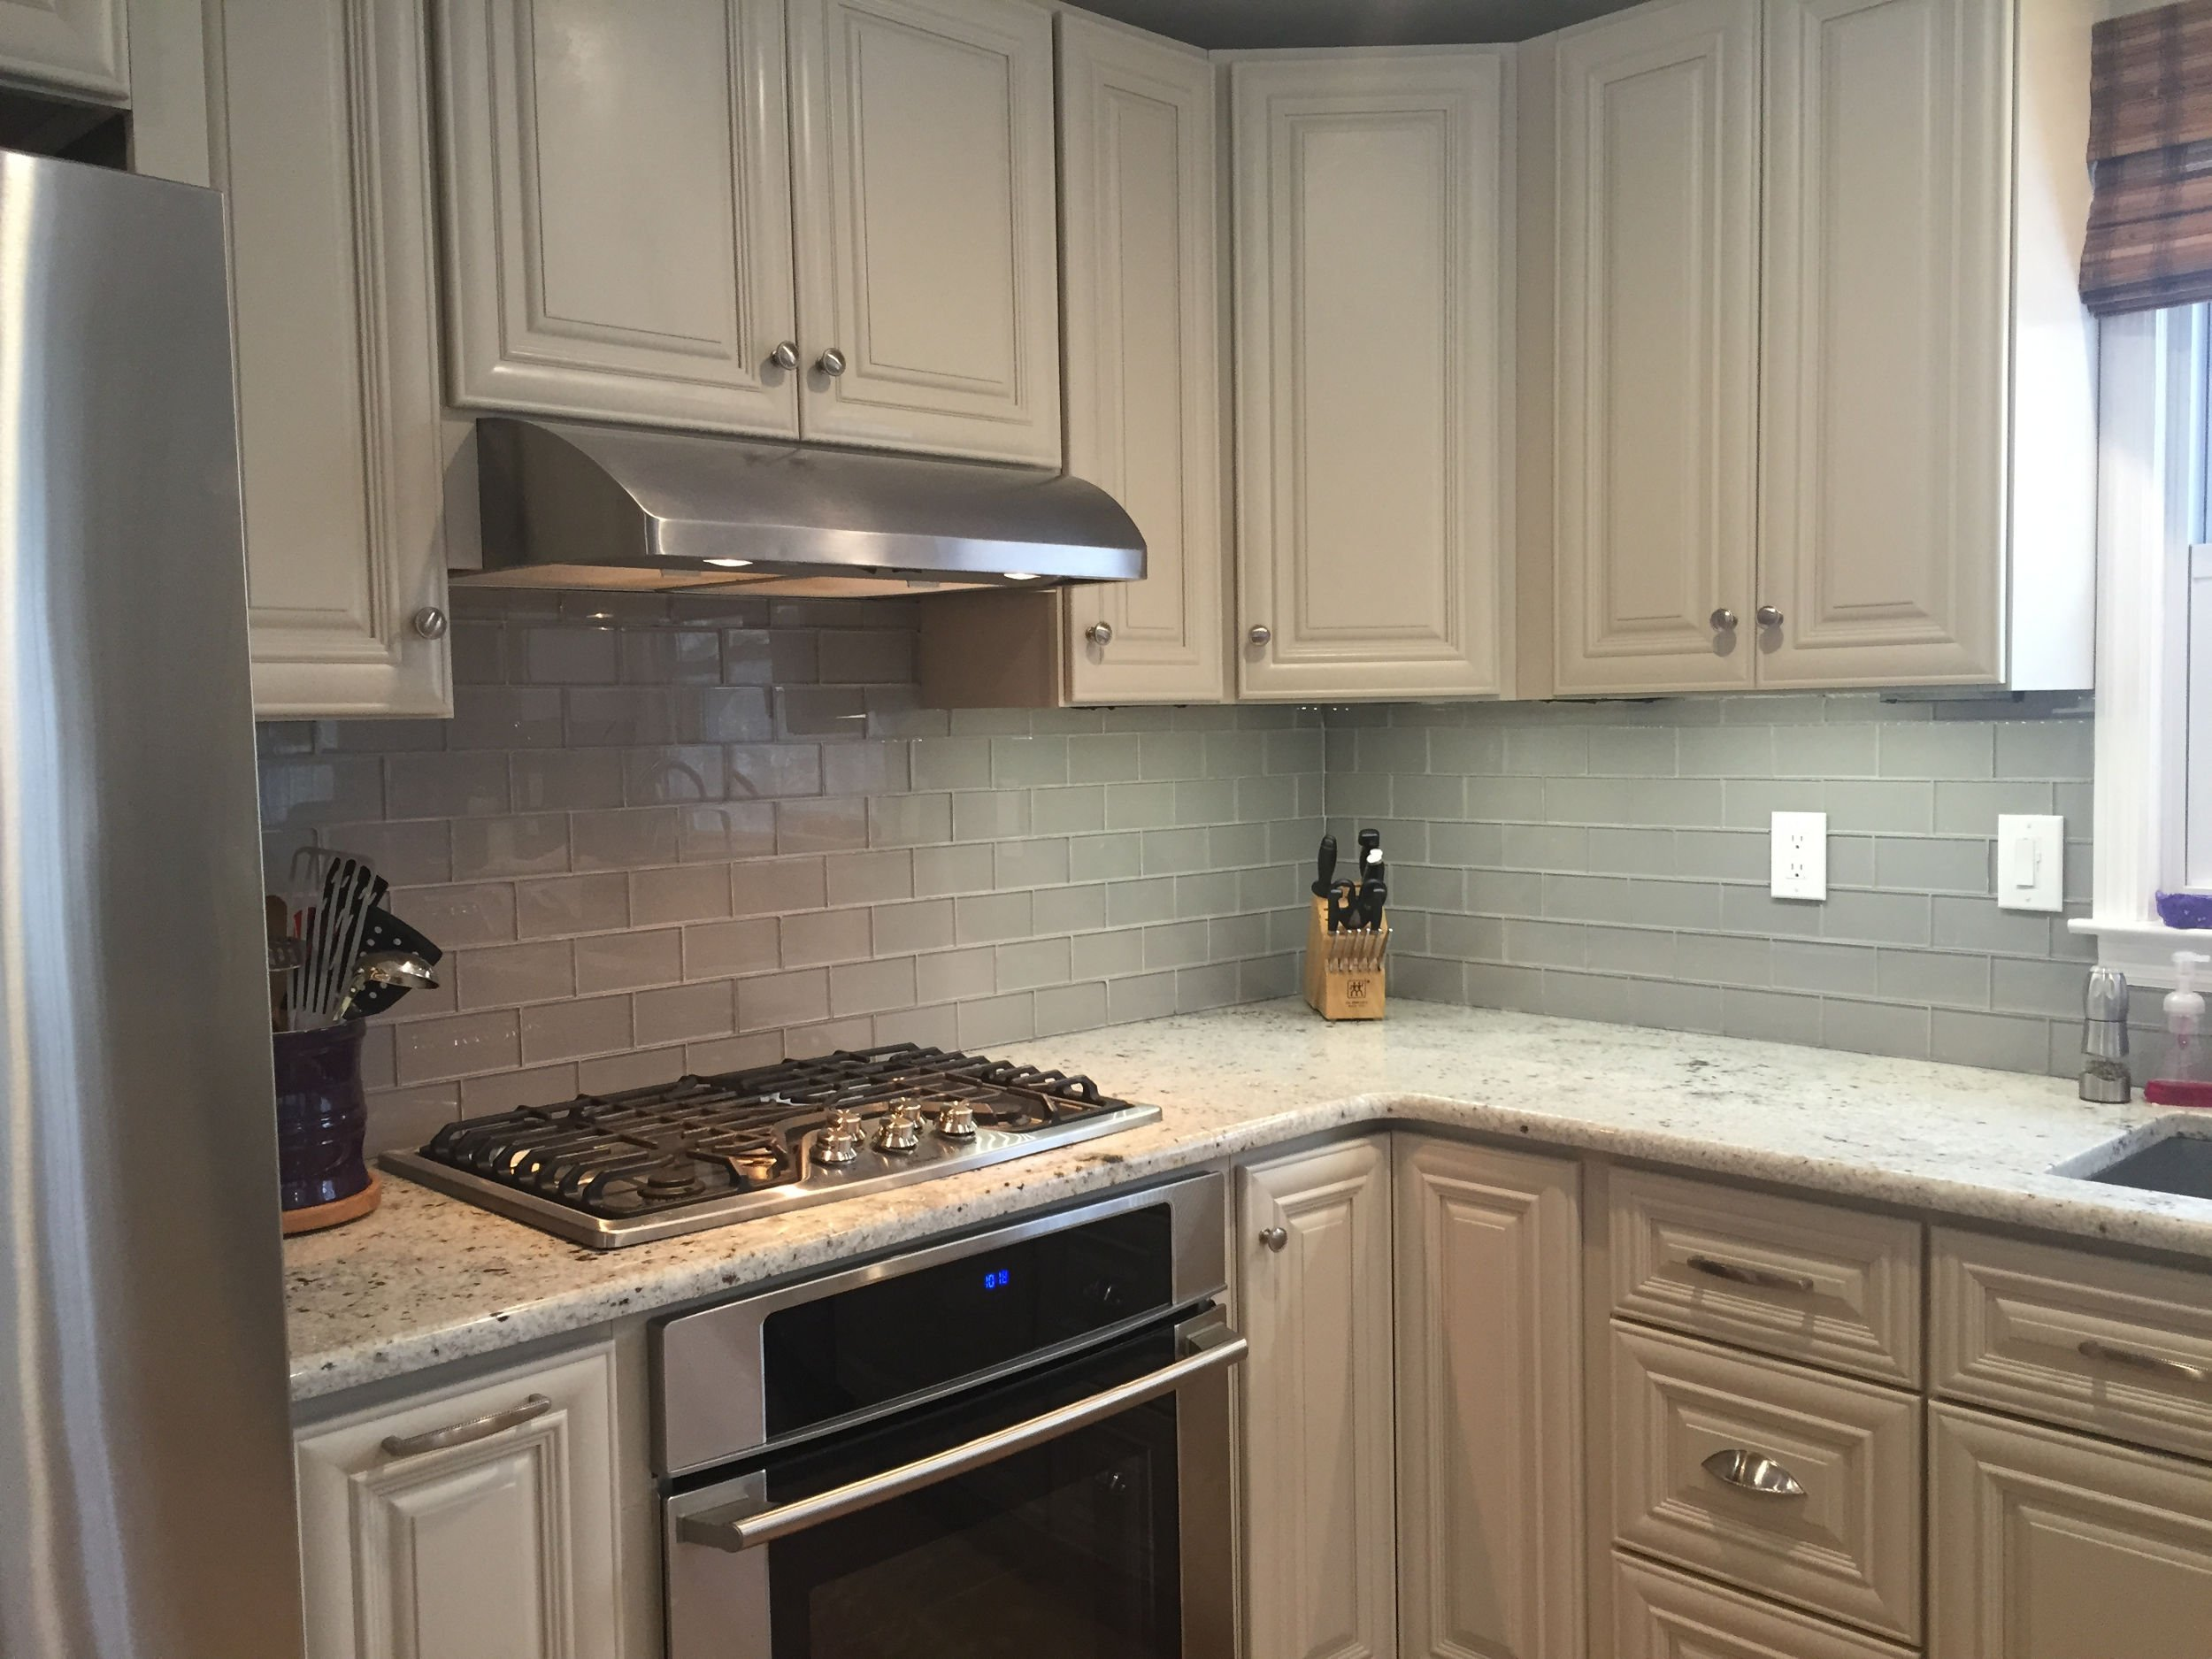 Kitchen Back Splash 75 Kitchen Backsplash Ideas For 2018 Tile Glass Metal Etc.